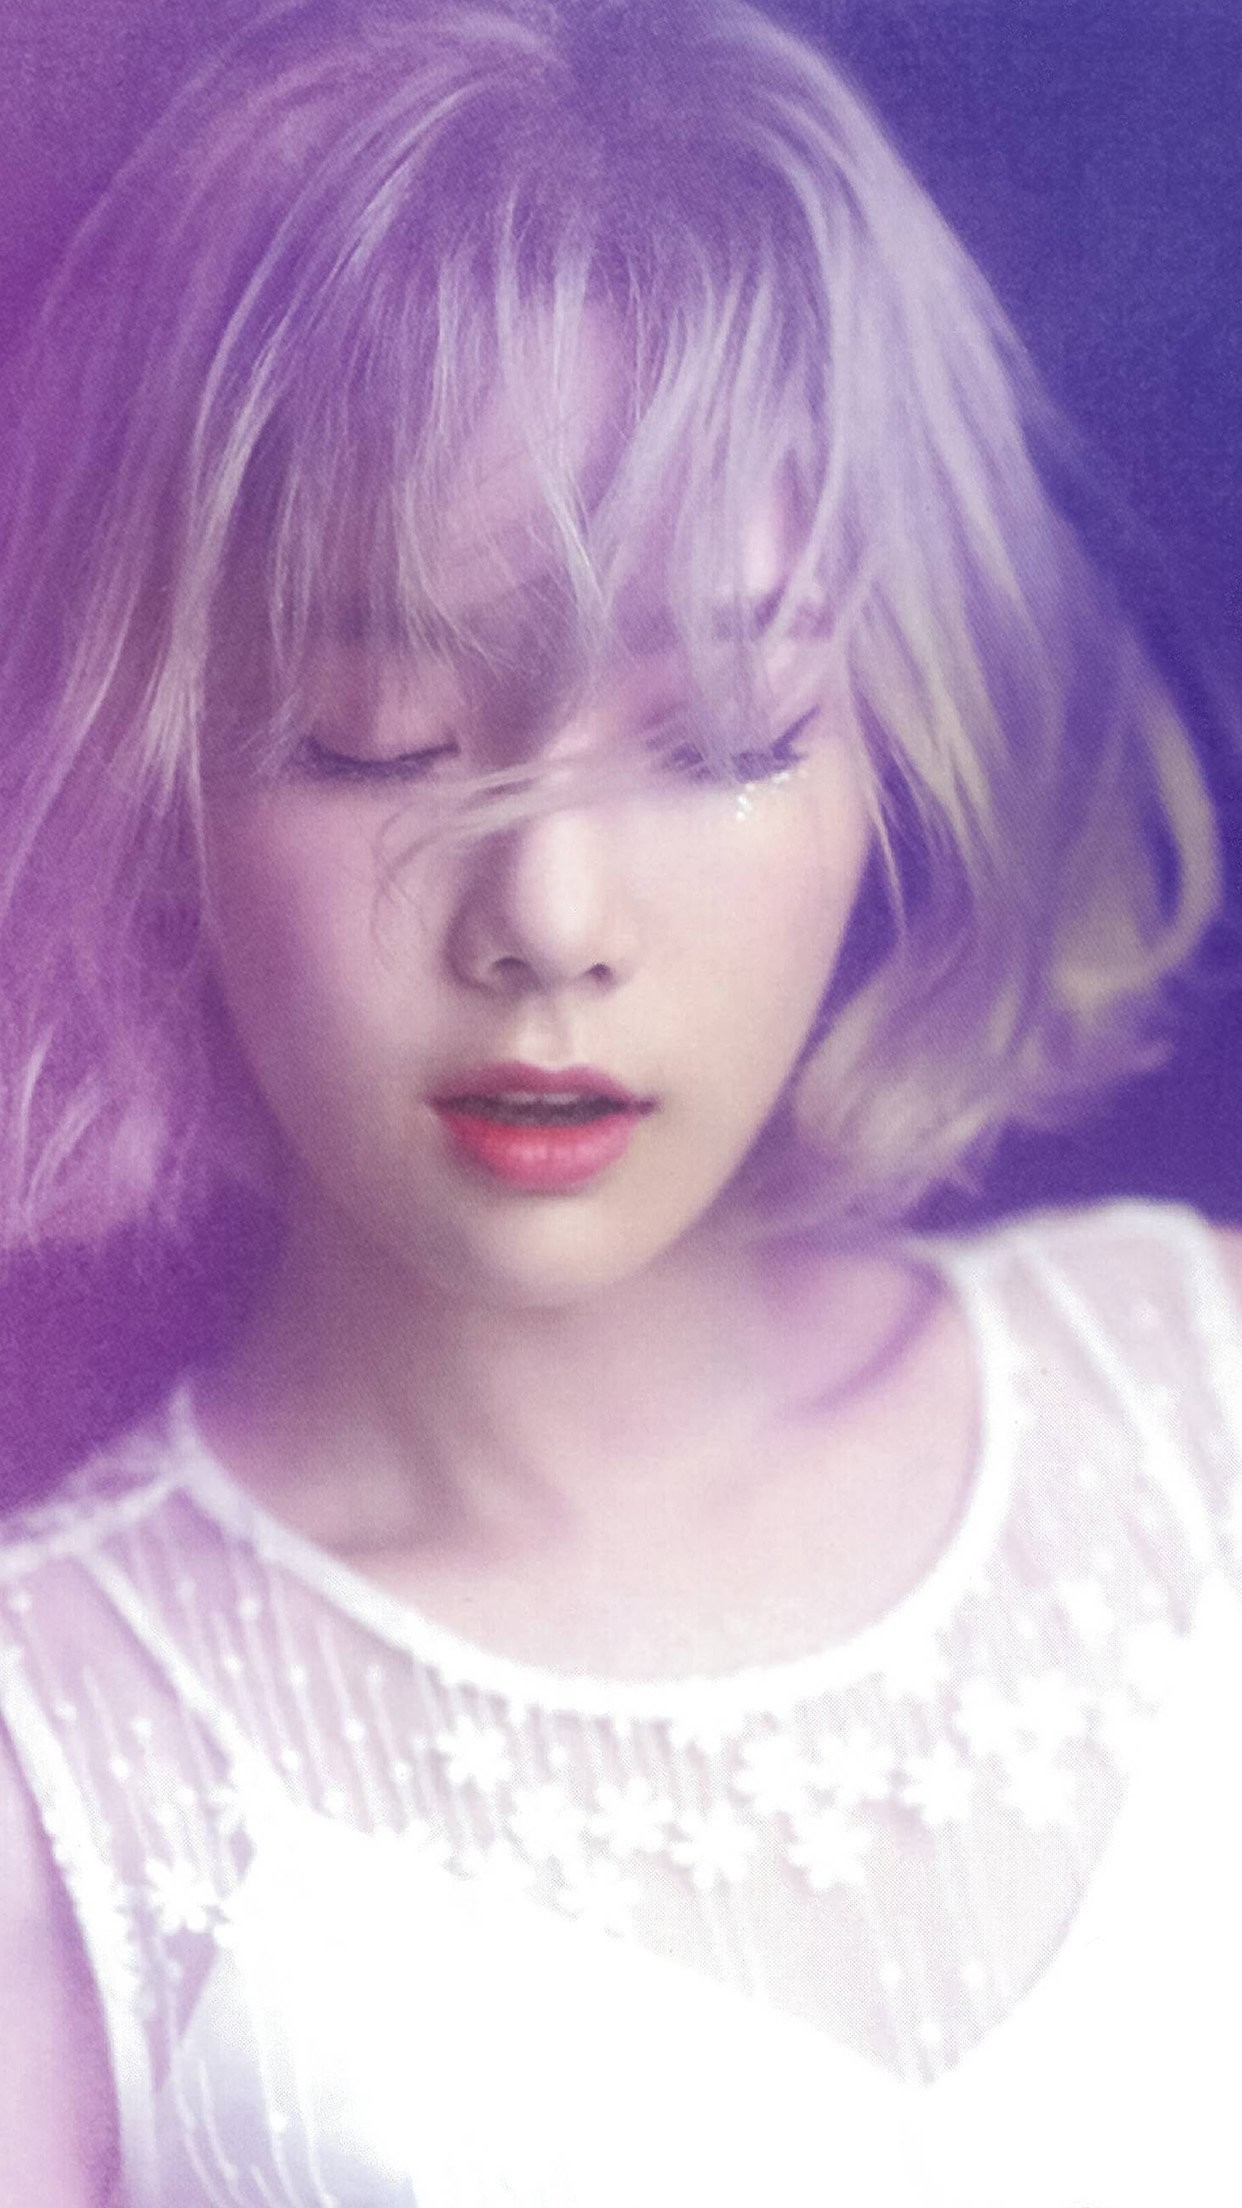 1242x2208 Related taeyeon snsd kpop girl purple pink iphone 7 wallpaper